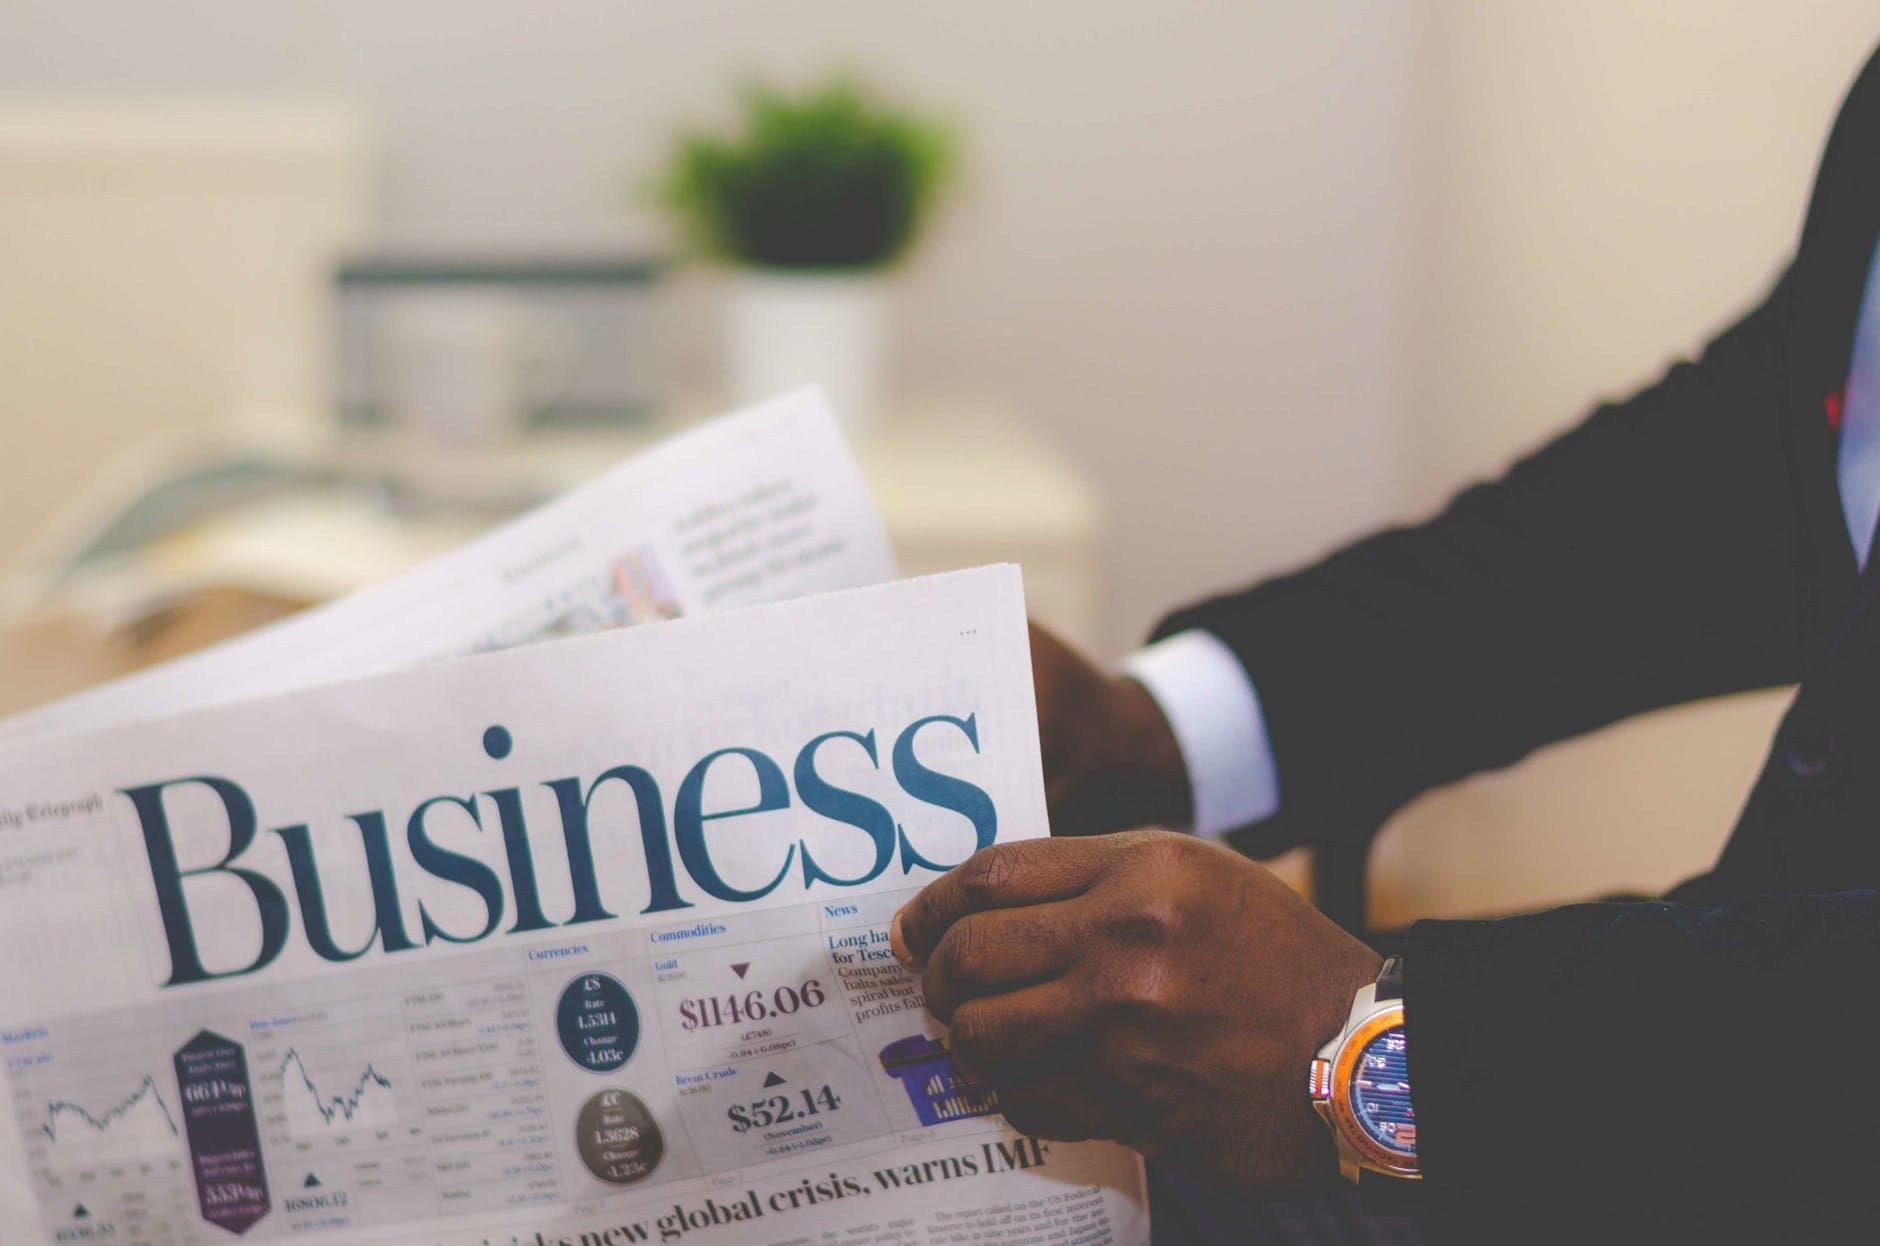 Business & Faith Based Resources -